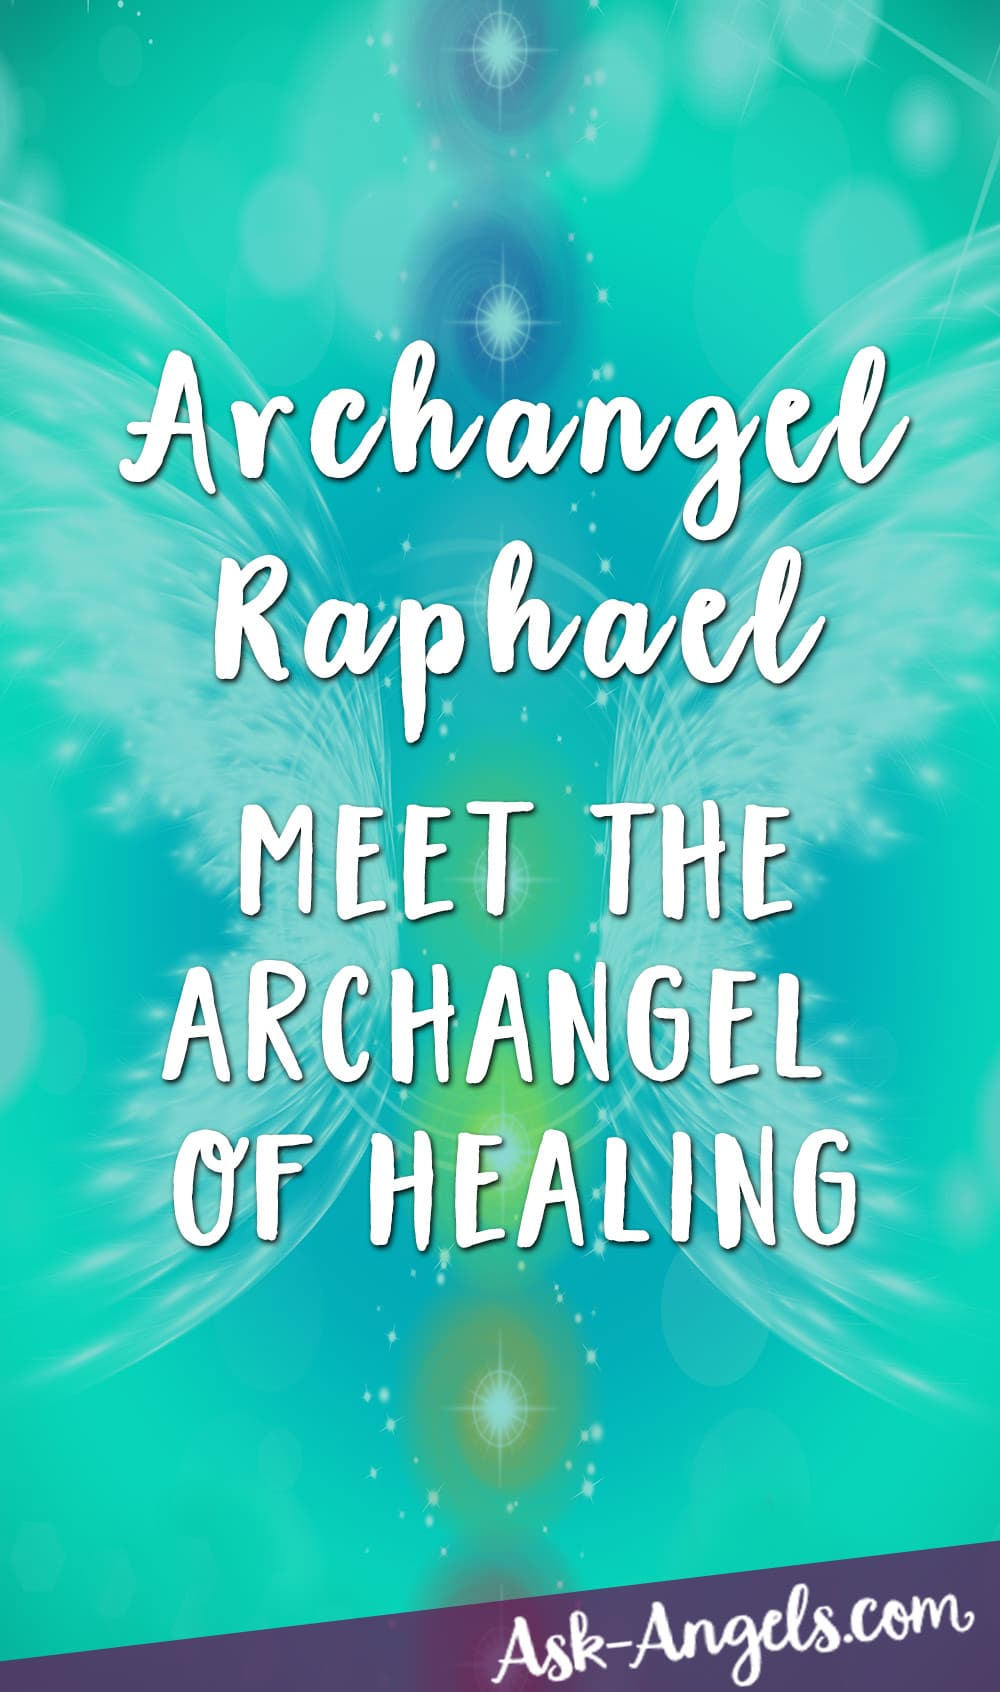 Archangel Raphael- The Archangel of Healing